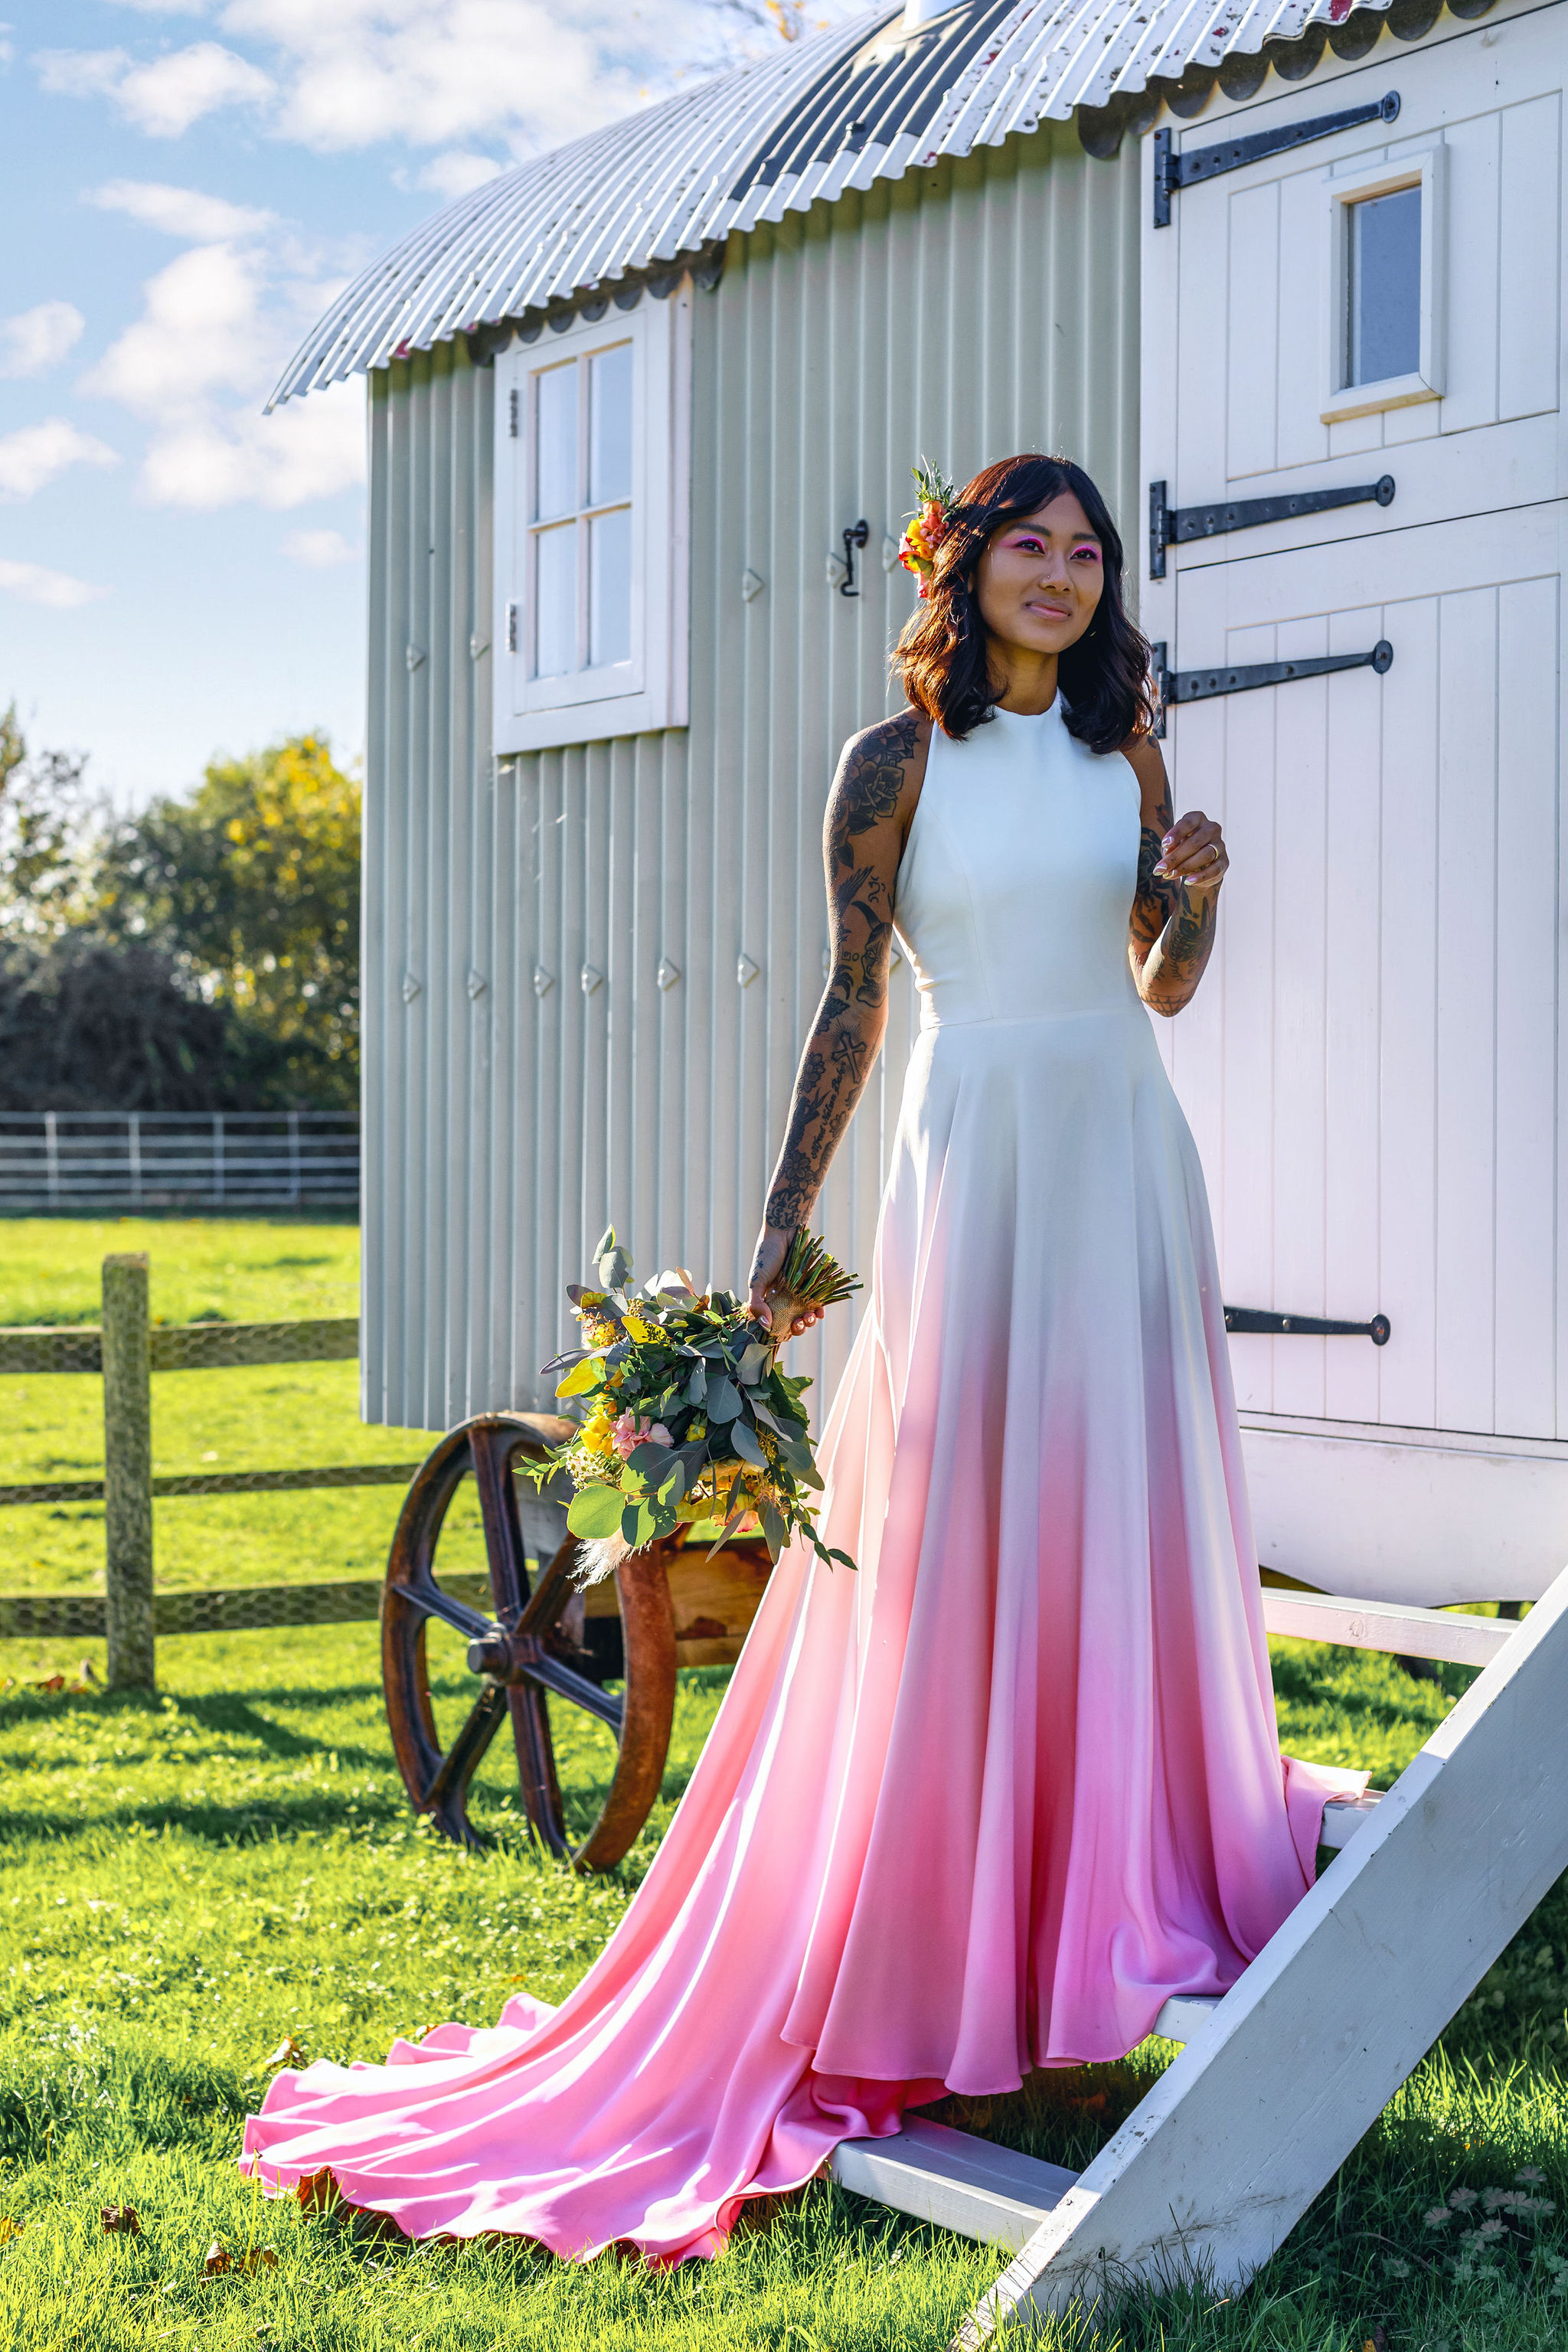 Favourite Lucy Can't Dance unique alternative wedding dress blog - peaches new bridalwear range 1 - pink ombre wedding dress